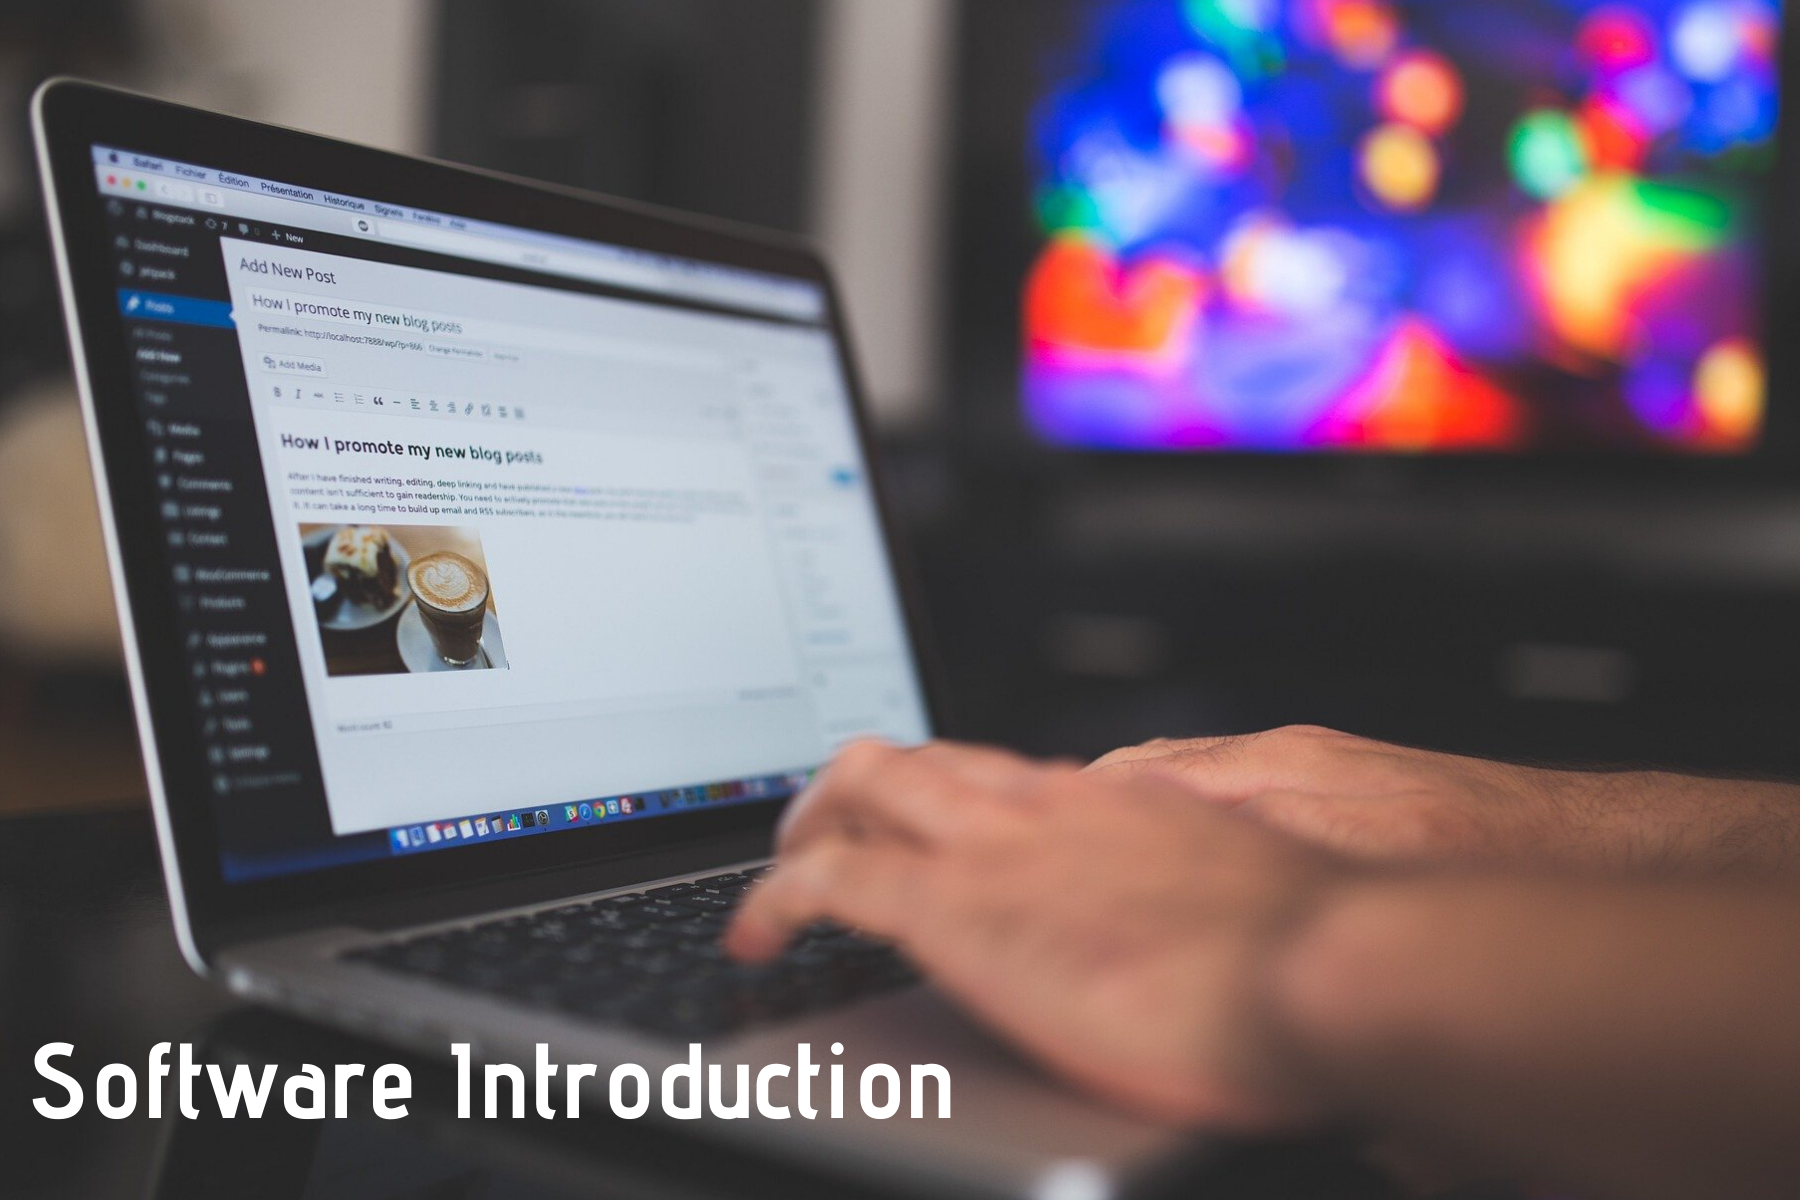 Software Introduction